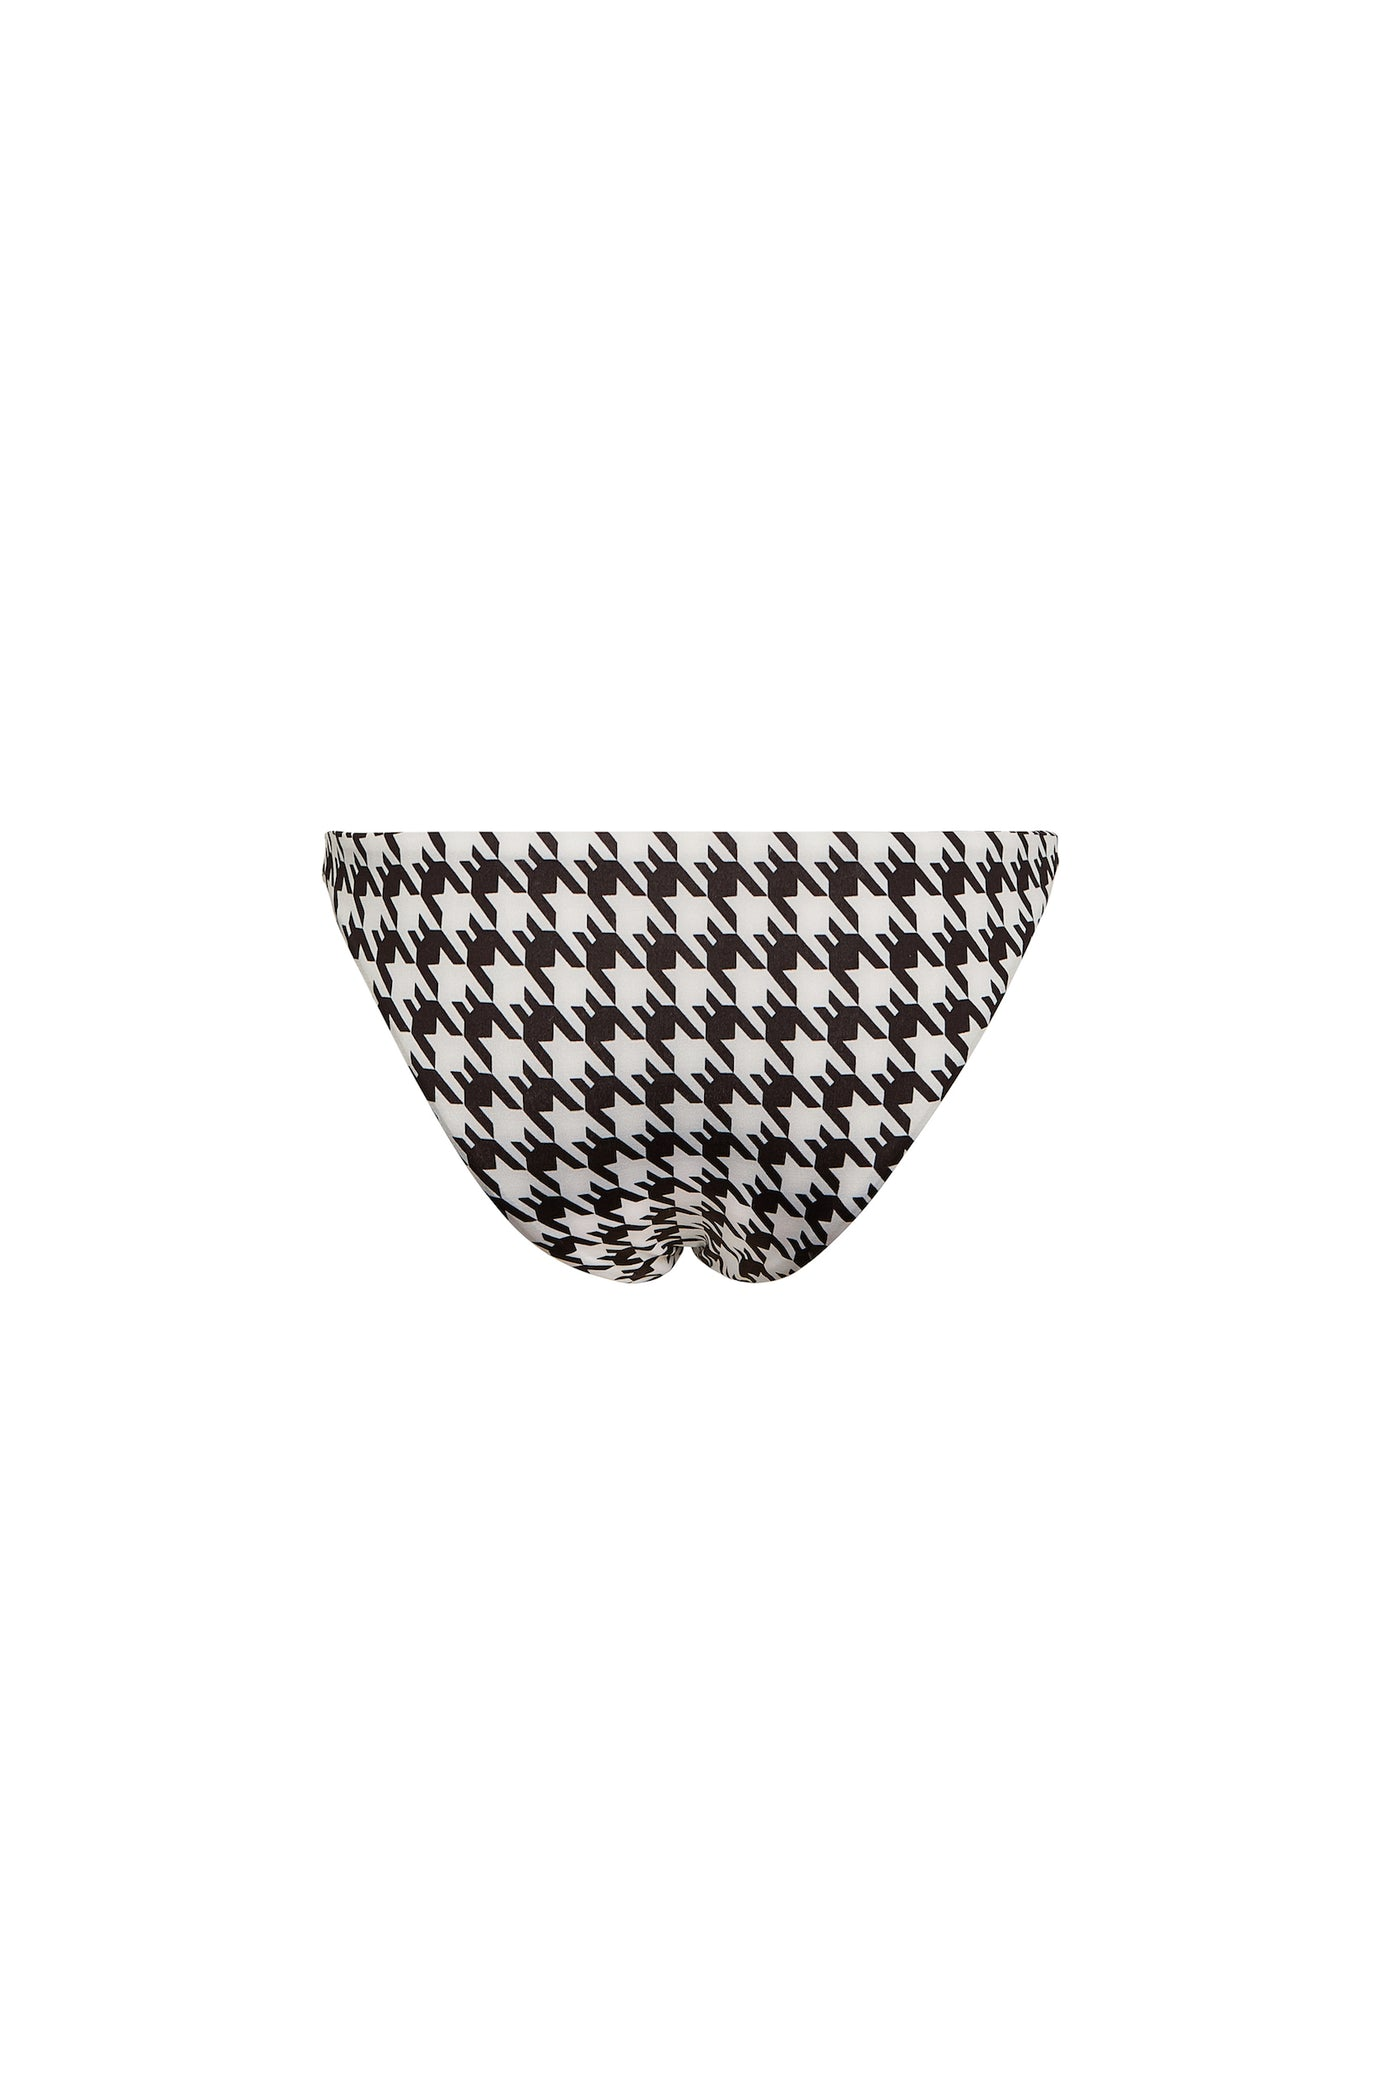 Brief Bottom (Black Houndstooth)